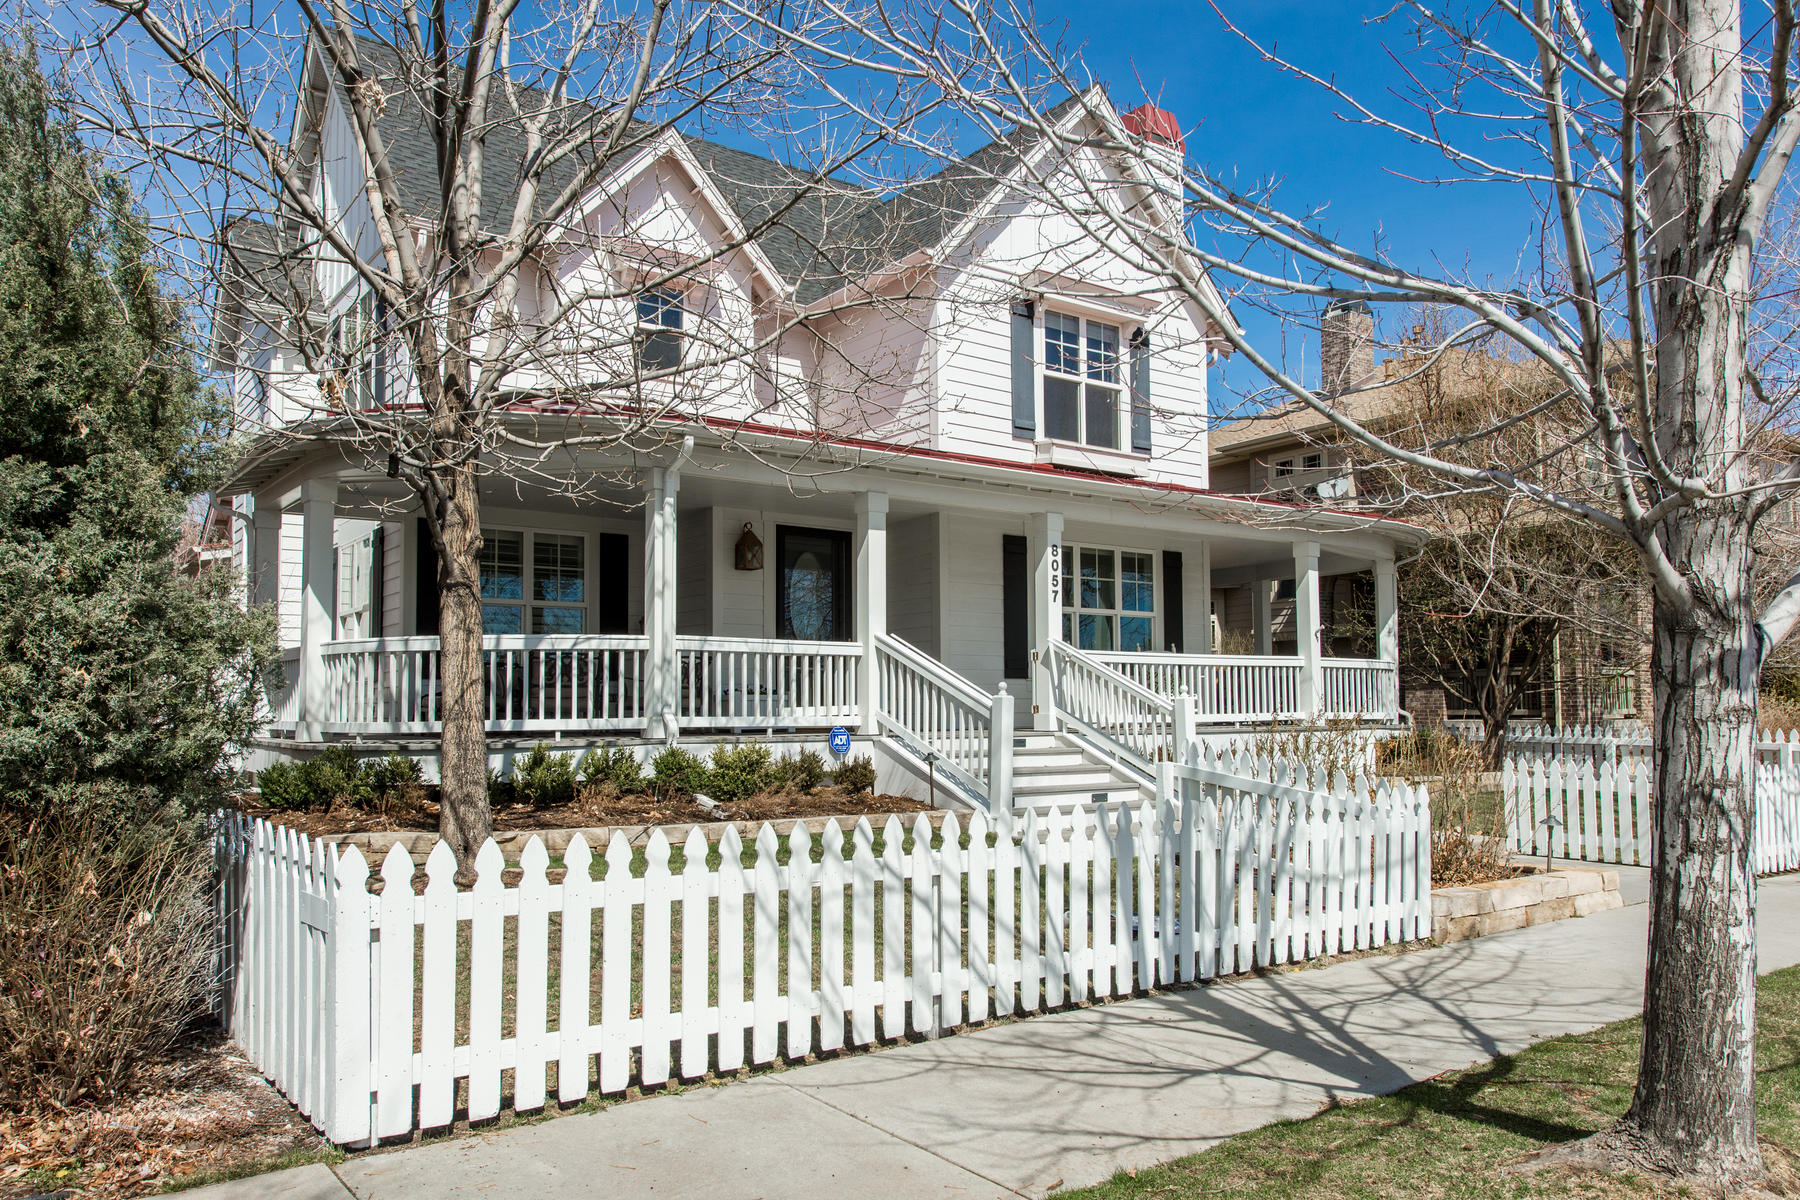 Single Family Home for Active at Quintessential Styling Inside and Out 8057 E. 24th Avenue Denver, Colorado 80238 United States